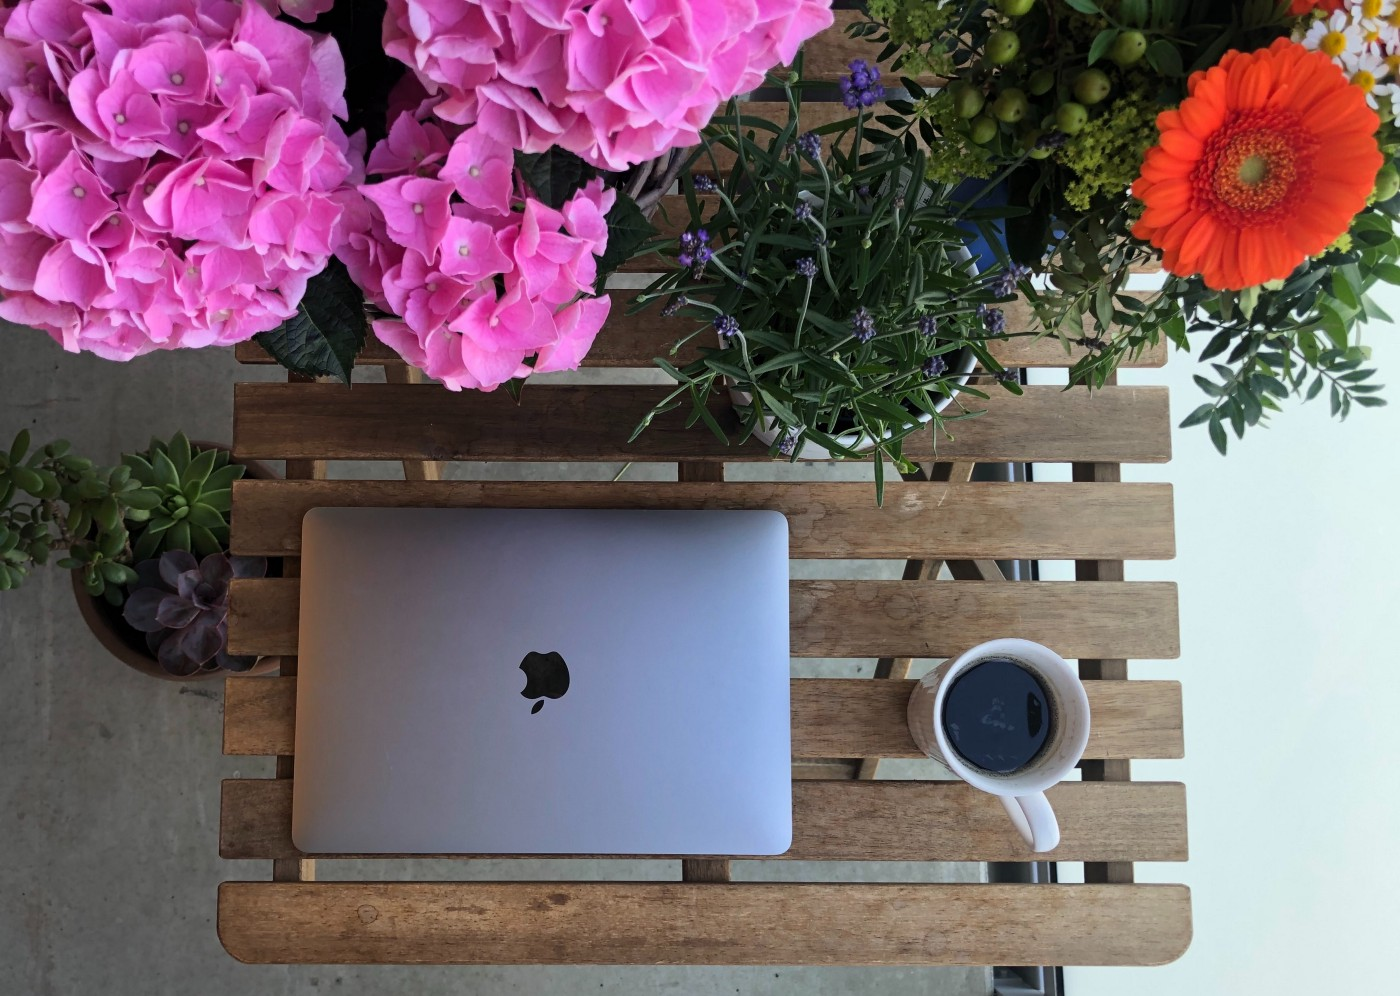 iPad, flowers, and a cup of coffee on a bench